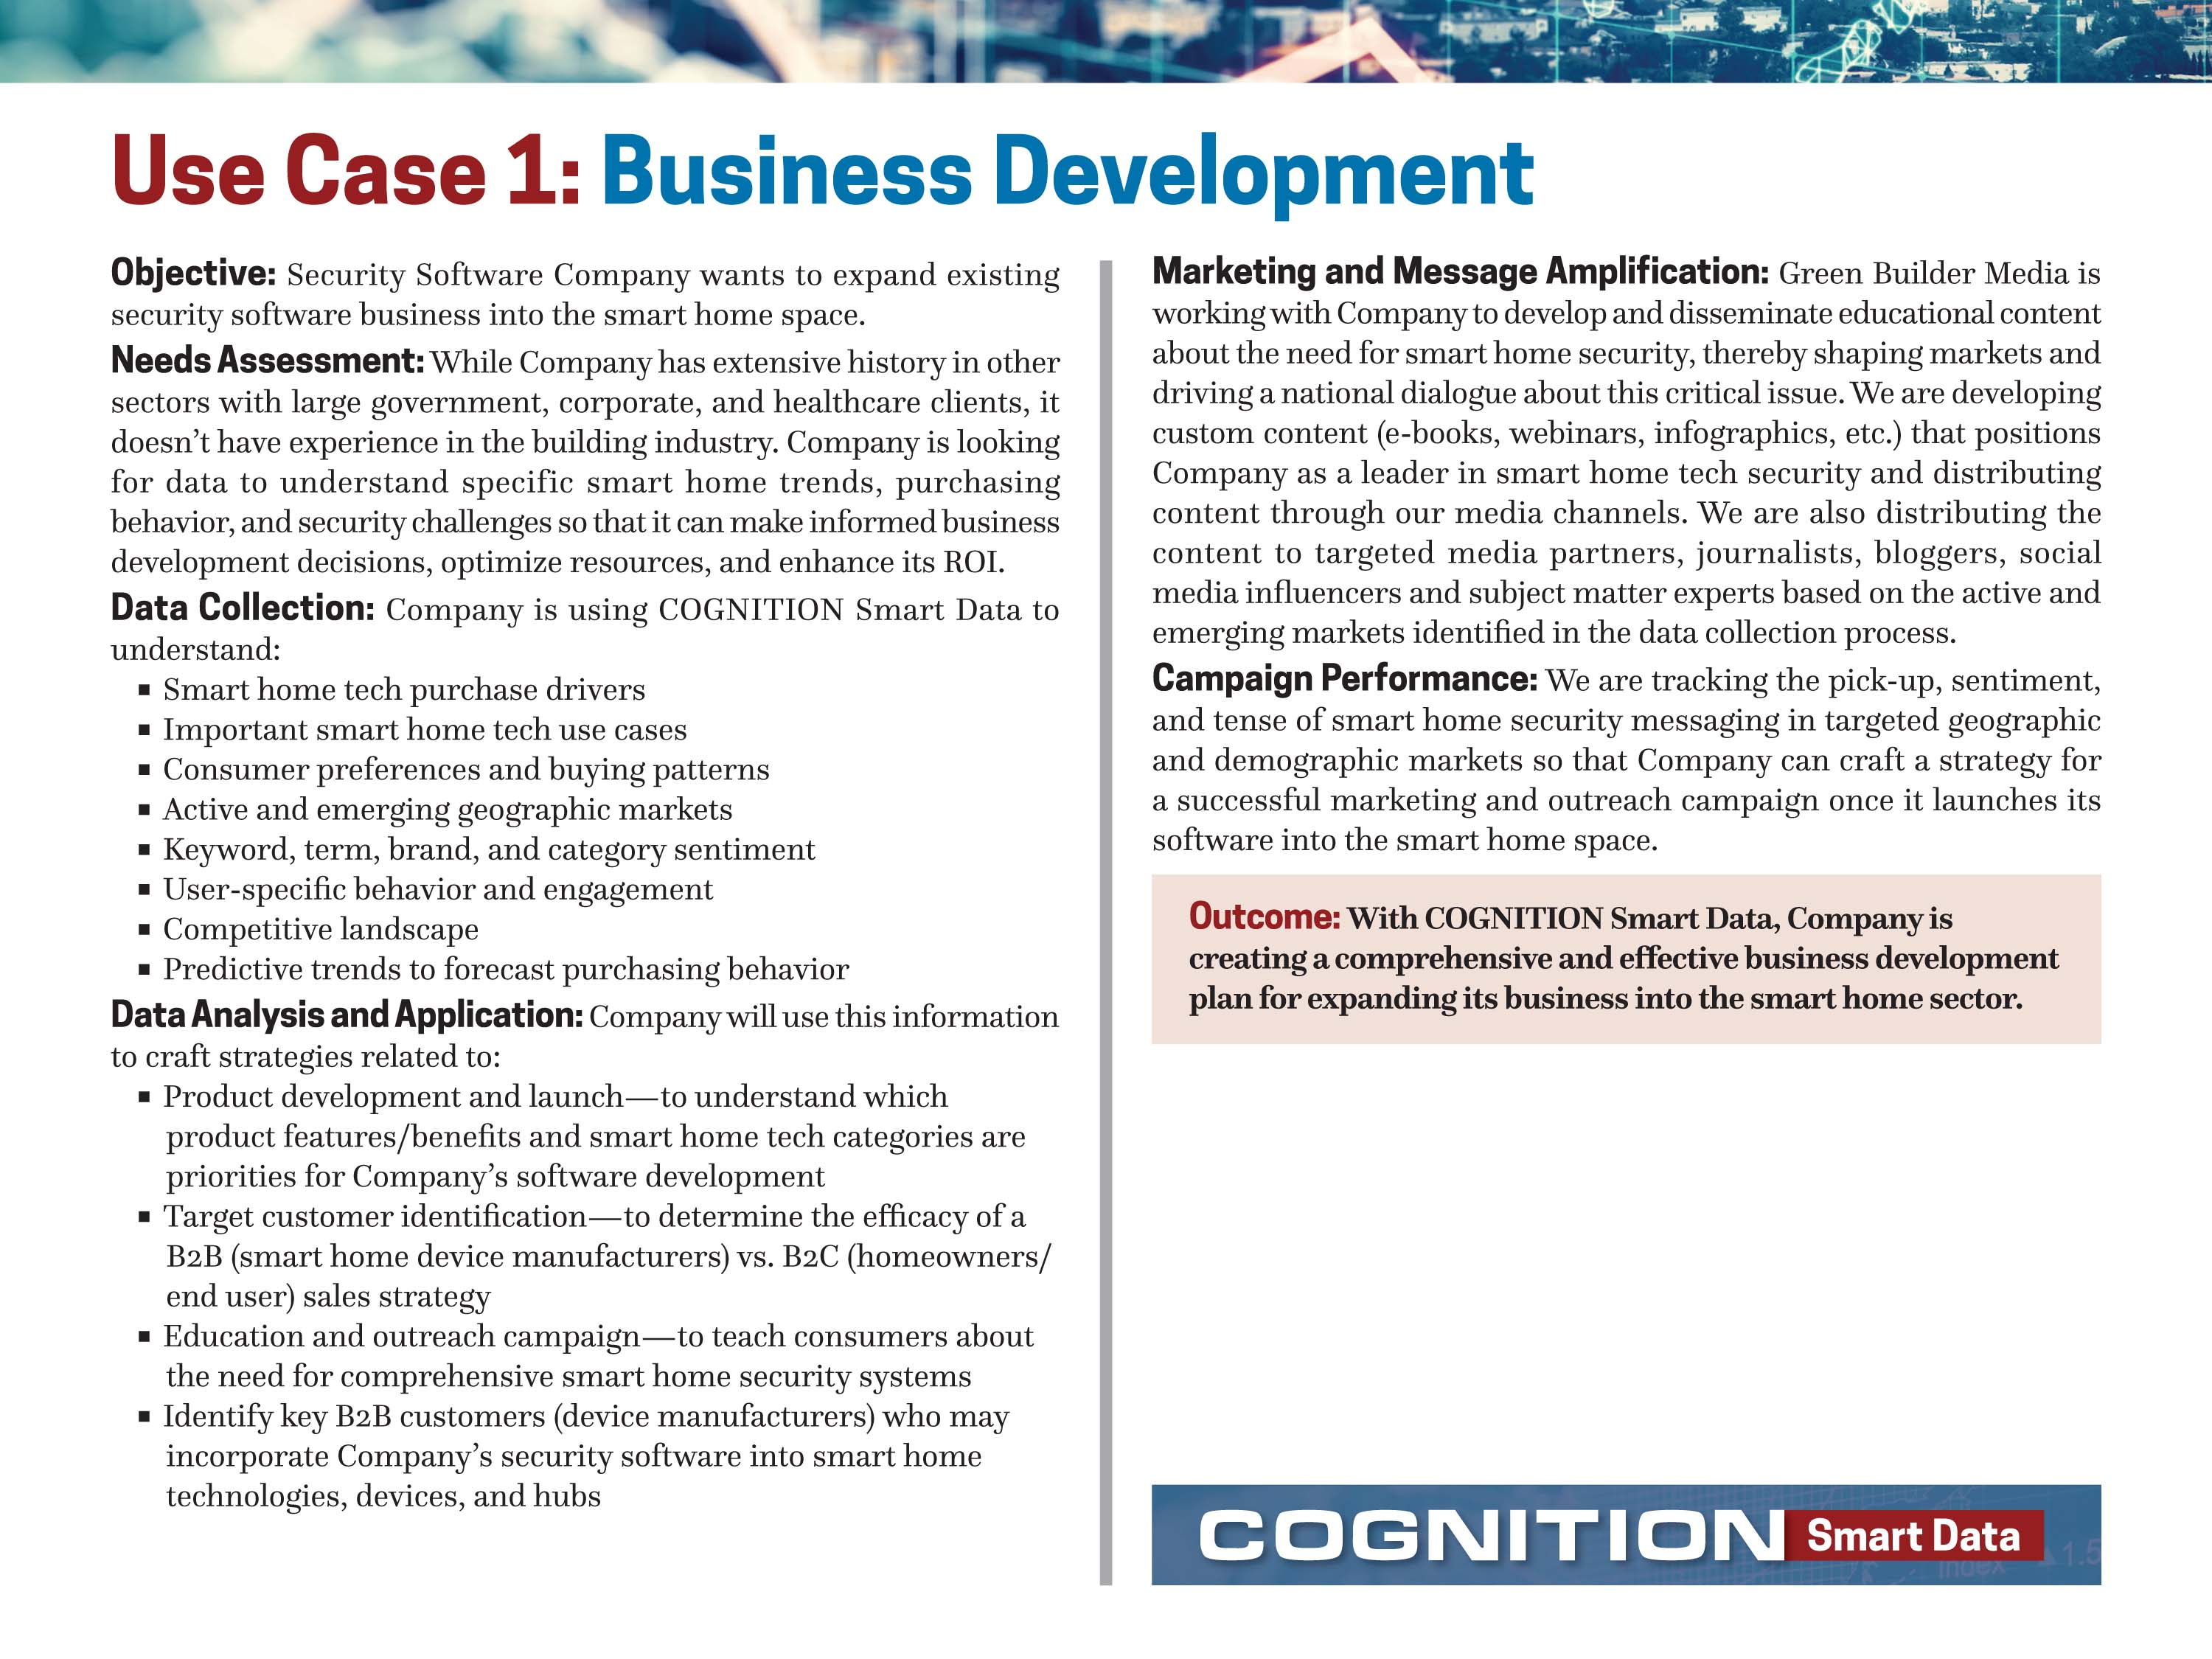 COGNITION Use Cases-1.jpg